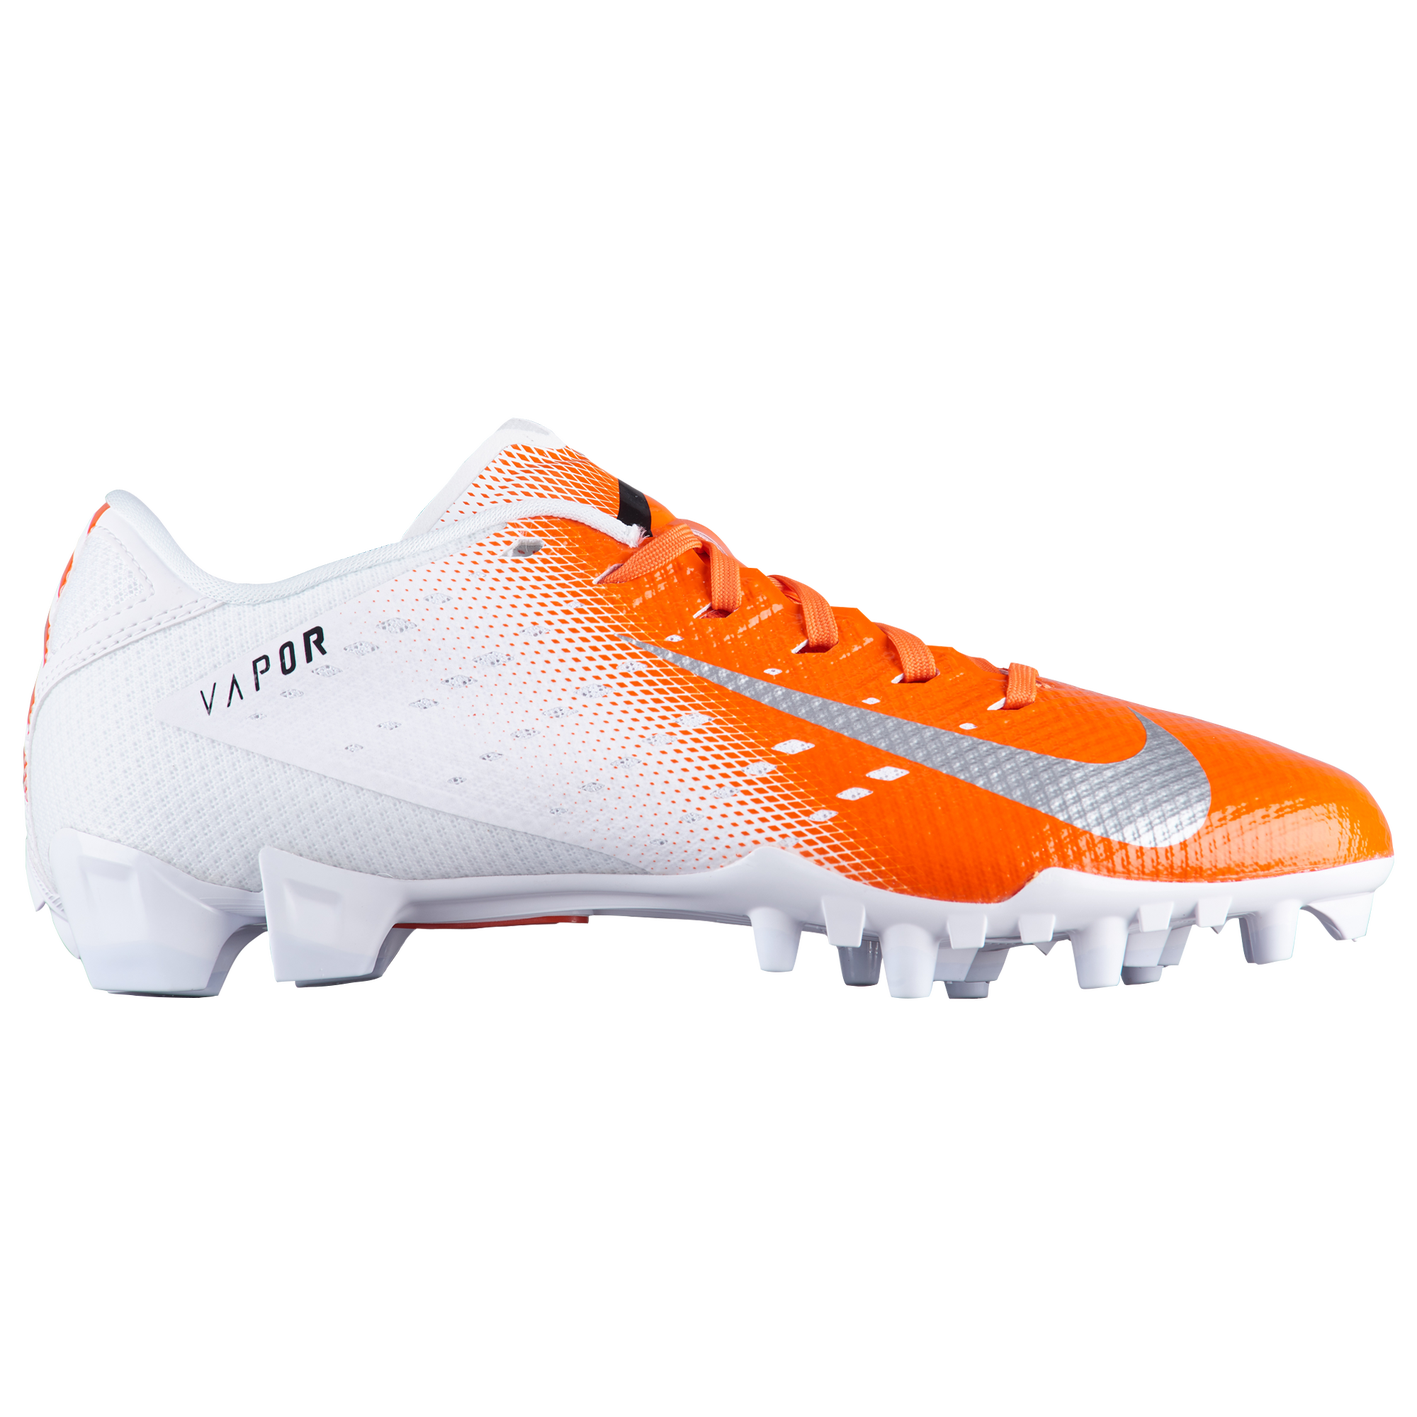 ca6a393a2c4c Nike Vapor Speed 3 TD - Men's - Football - Shoes - White/Metallic ...